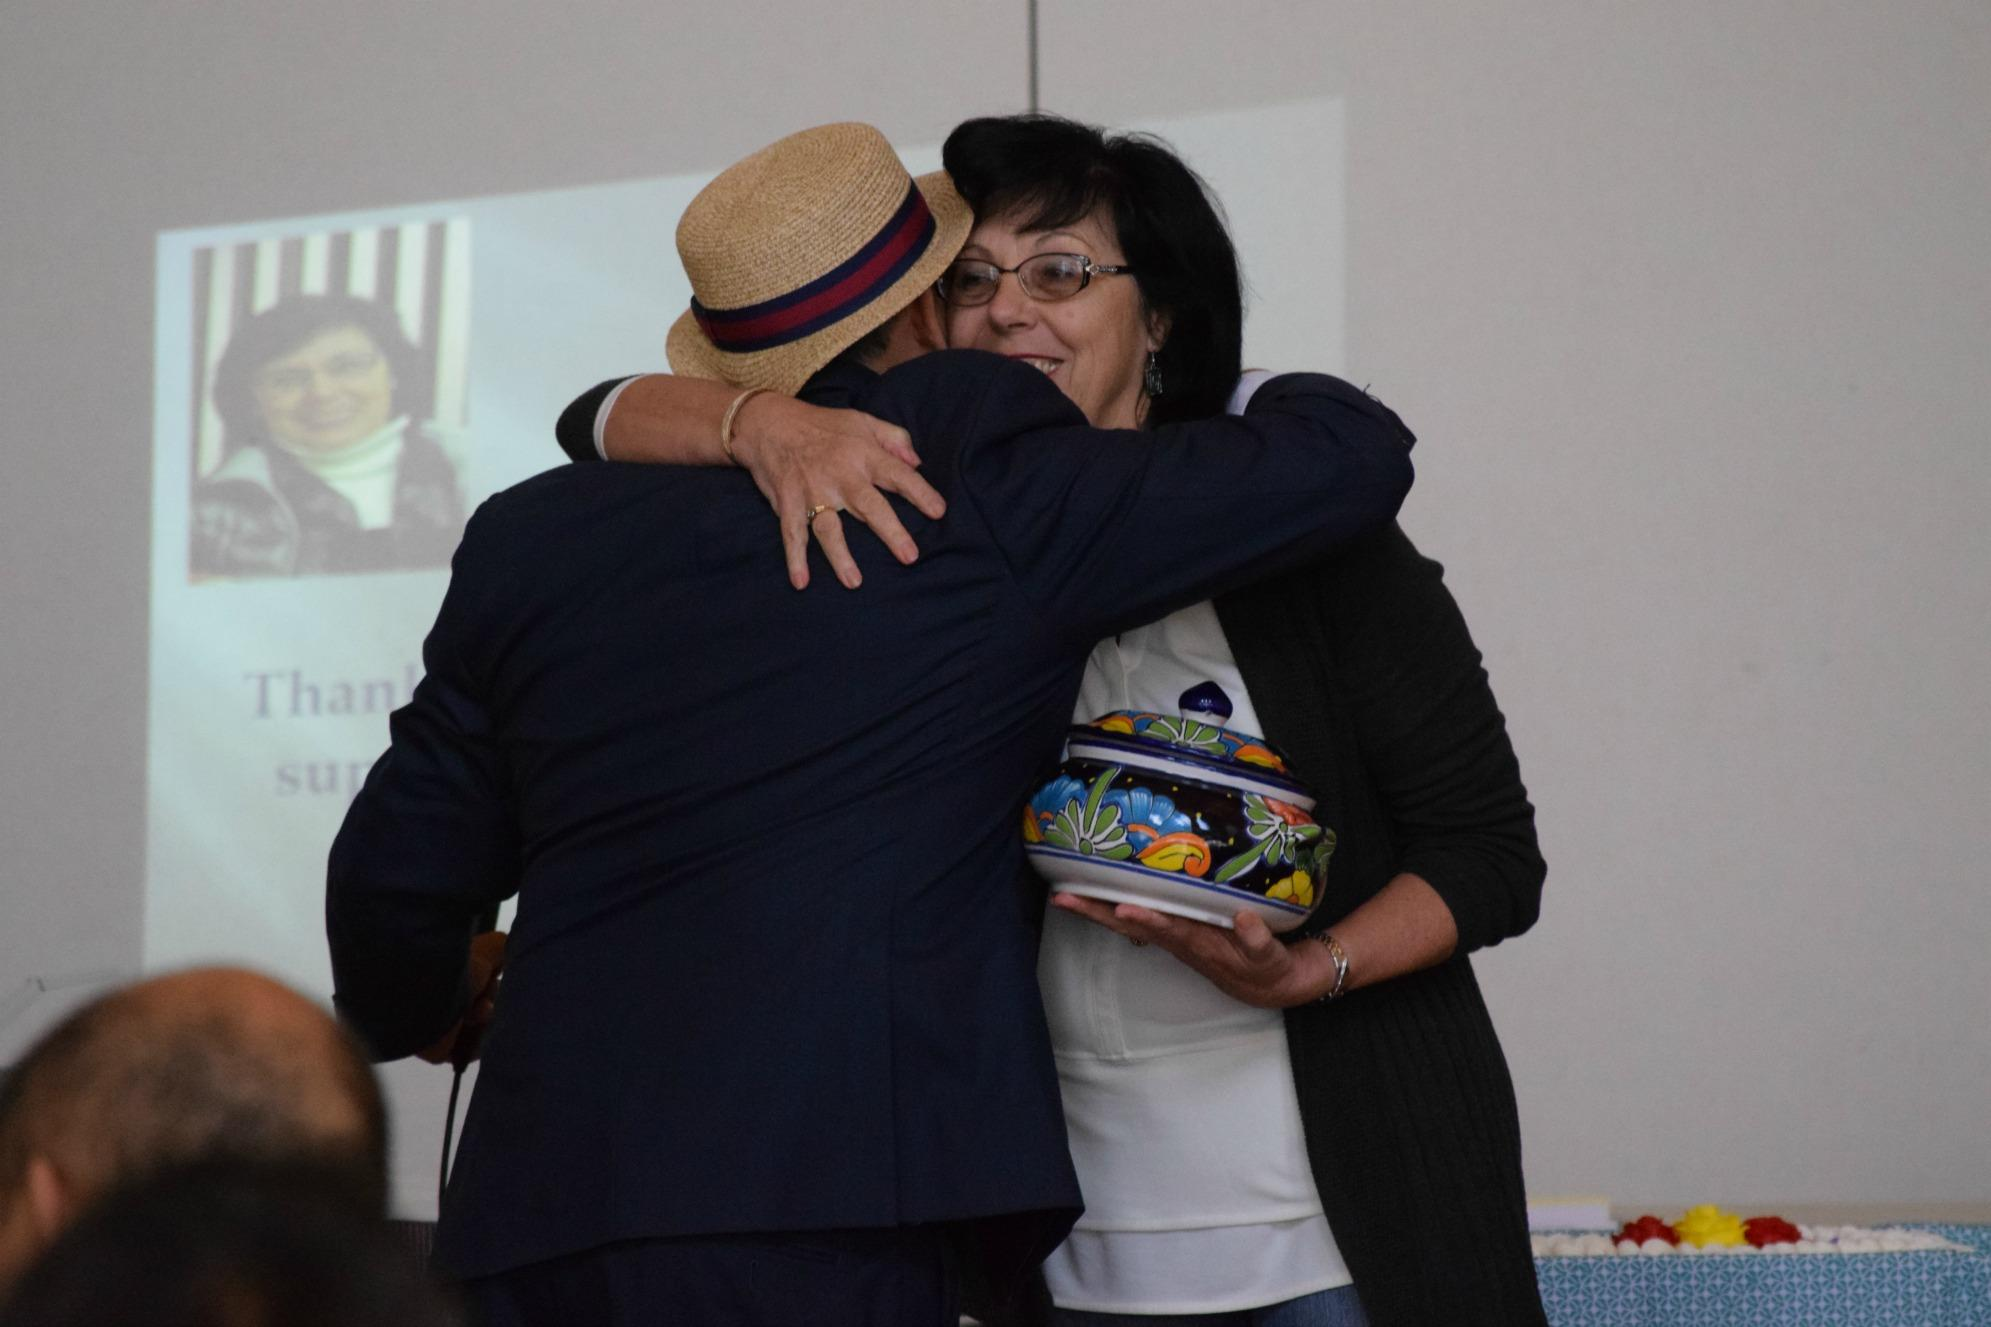 Former Associate Superintendent Brigitte Sarraf, who supported the Latino community during her 47 years with the district, receives a gift of appreciation from counselor Ariel Rojas during the Latino summit. Photo by Francesca Fallow.